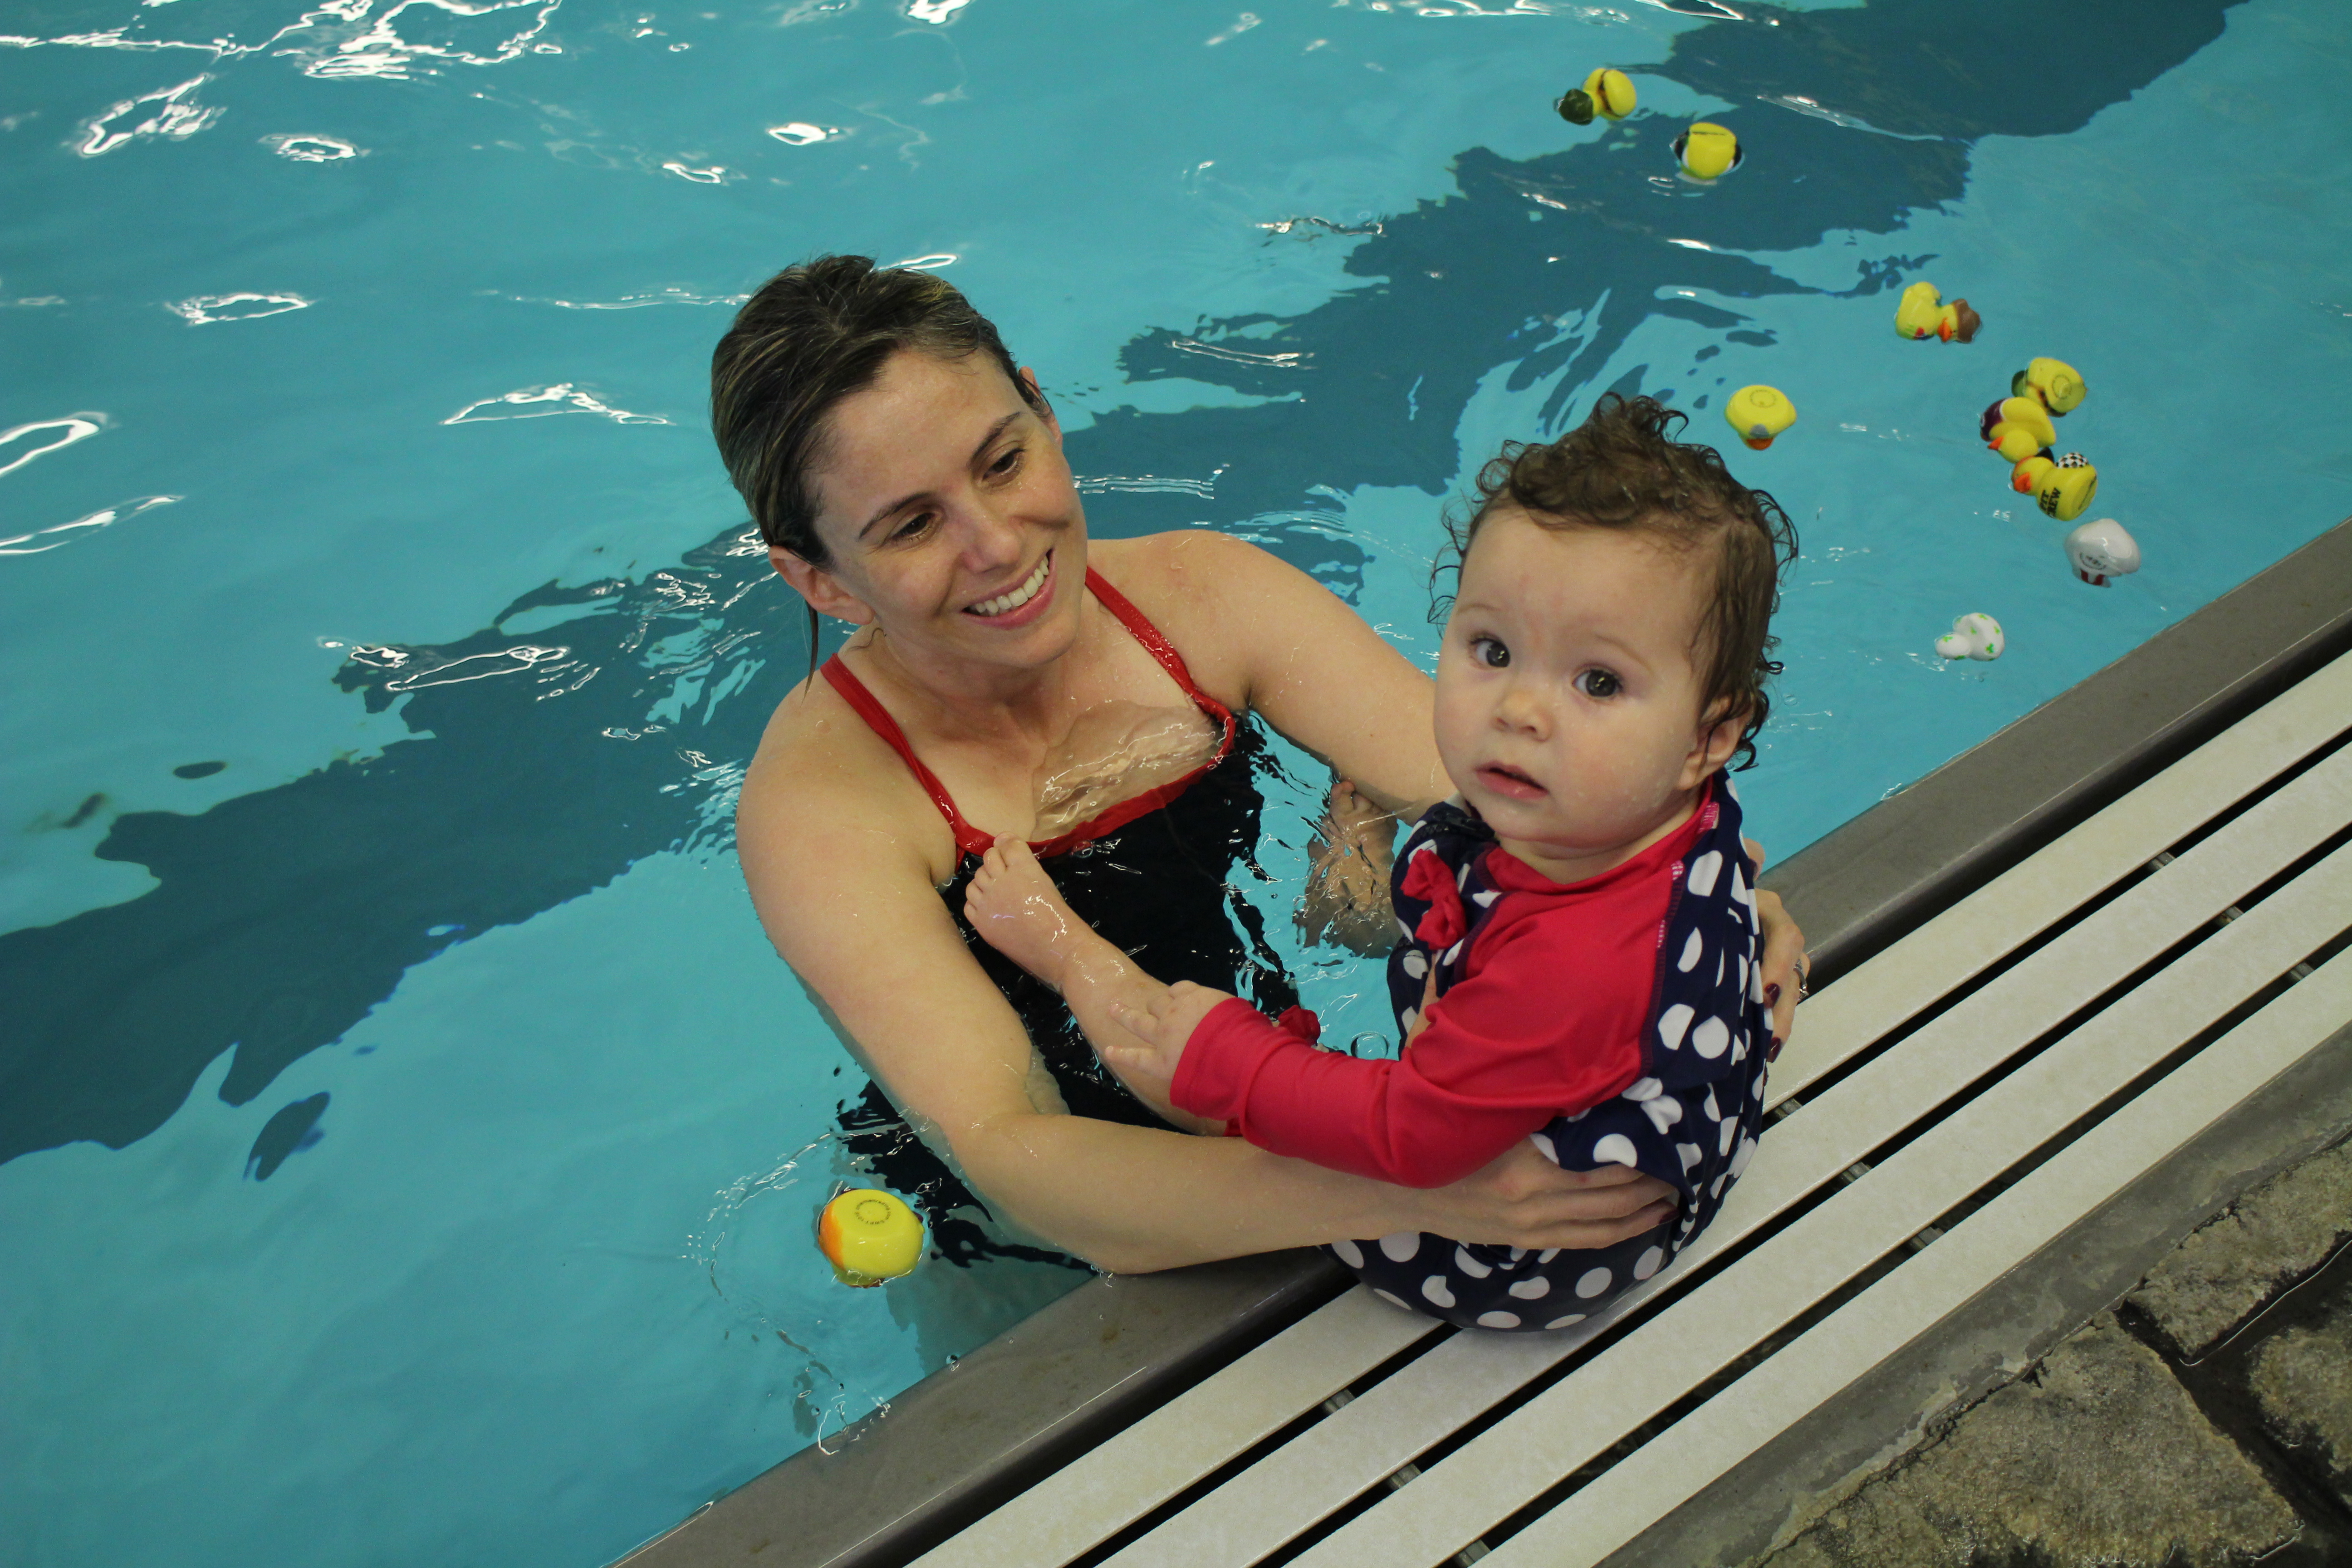 first swim lesson, dedham swim lessons, swimming lessons, my child hates swimming, how to help my child feel comfortable in the water, swimming lessons near me, swimming lessons in dedham